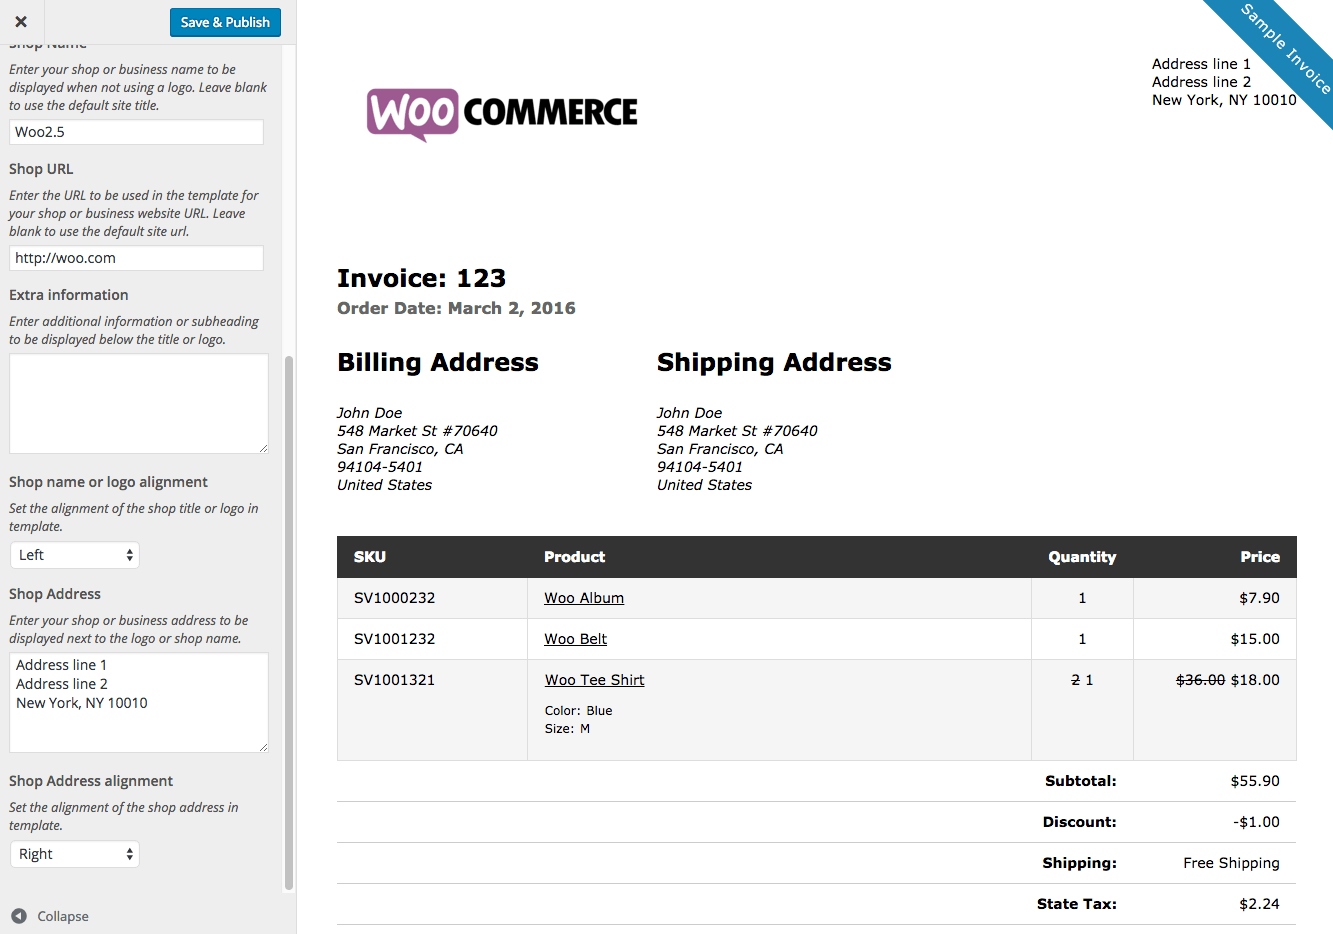 Patriotexpressus  Gorgeous Woocommerce Print Invoices Amp Packing Lists  Woocommerce Docs With Glamorous Woocommerce Print Invoices  Packing Lists Customizer With Awesome Writing Invoice Template Also Invoice Factoring Companies Uk In Addition Dot Net Invoice And Sample Invoice Word Format As Well As What Is The Meaning Of Proforma Invoice Additionally Performa Invoice Format From Docswoocommercecom With Patriotexpressus  Glamorous Woocommerce Print Invoices Amp Packing Lists  Woocommerce Docs With Awesome Woocommerce Print Invoices  Packing Lists Customizer And Gorgeous Writing Invoice Template Also Invoice Factoring Companies Uk In Addition Dot Net Invoice From Docswoocommercecom